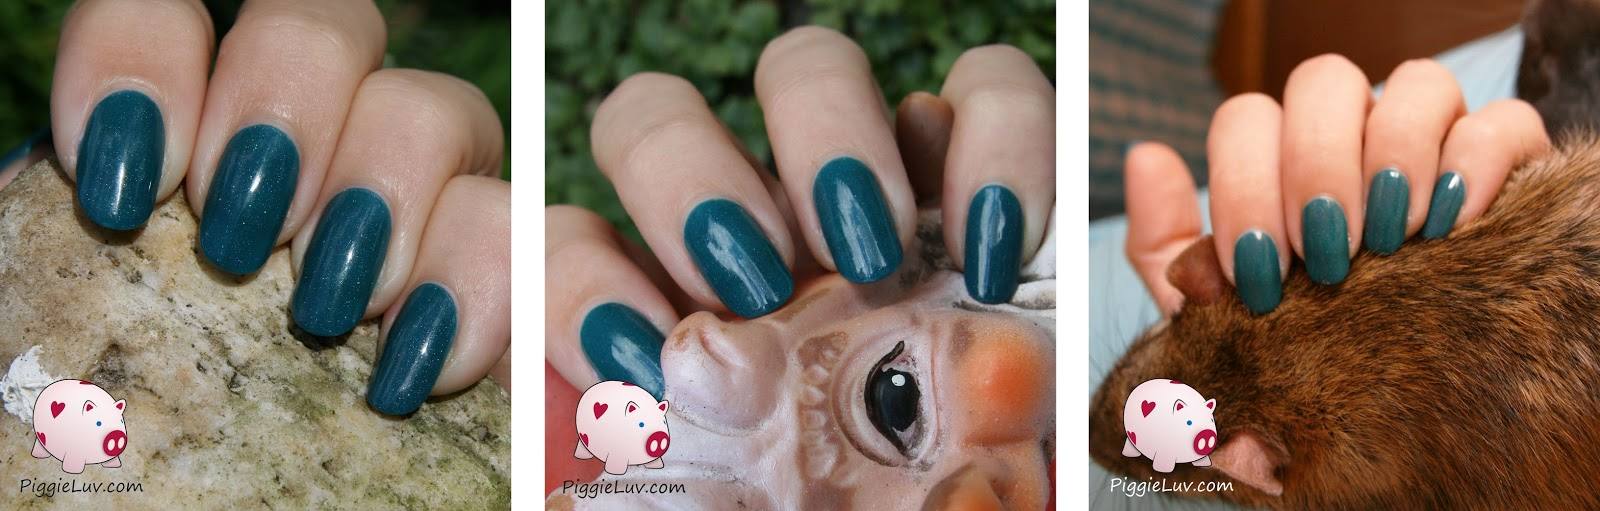 PiggieLuv: 10 ways to make your nail photos look even better!